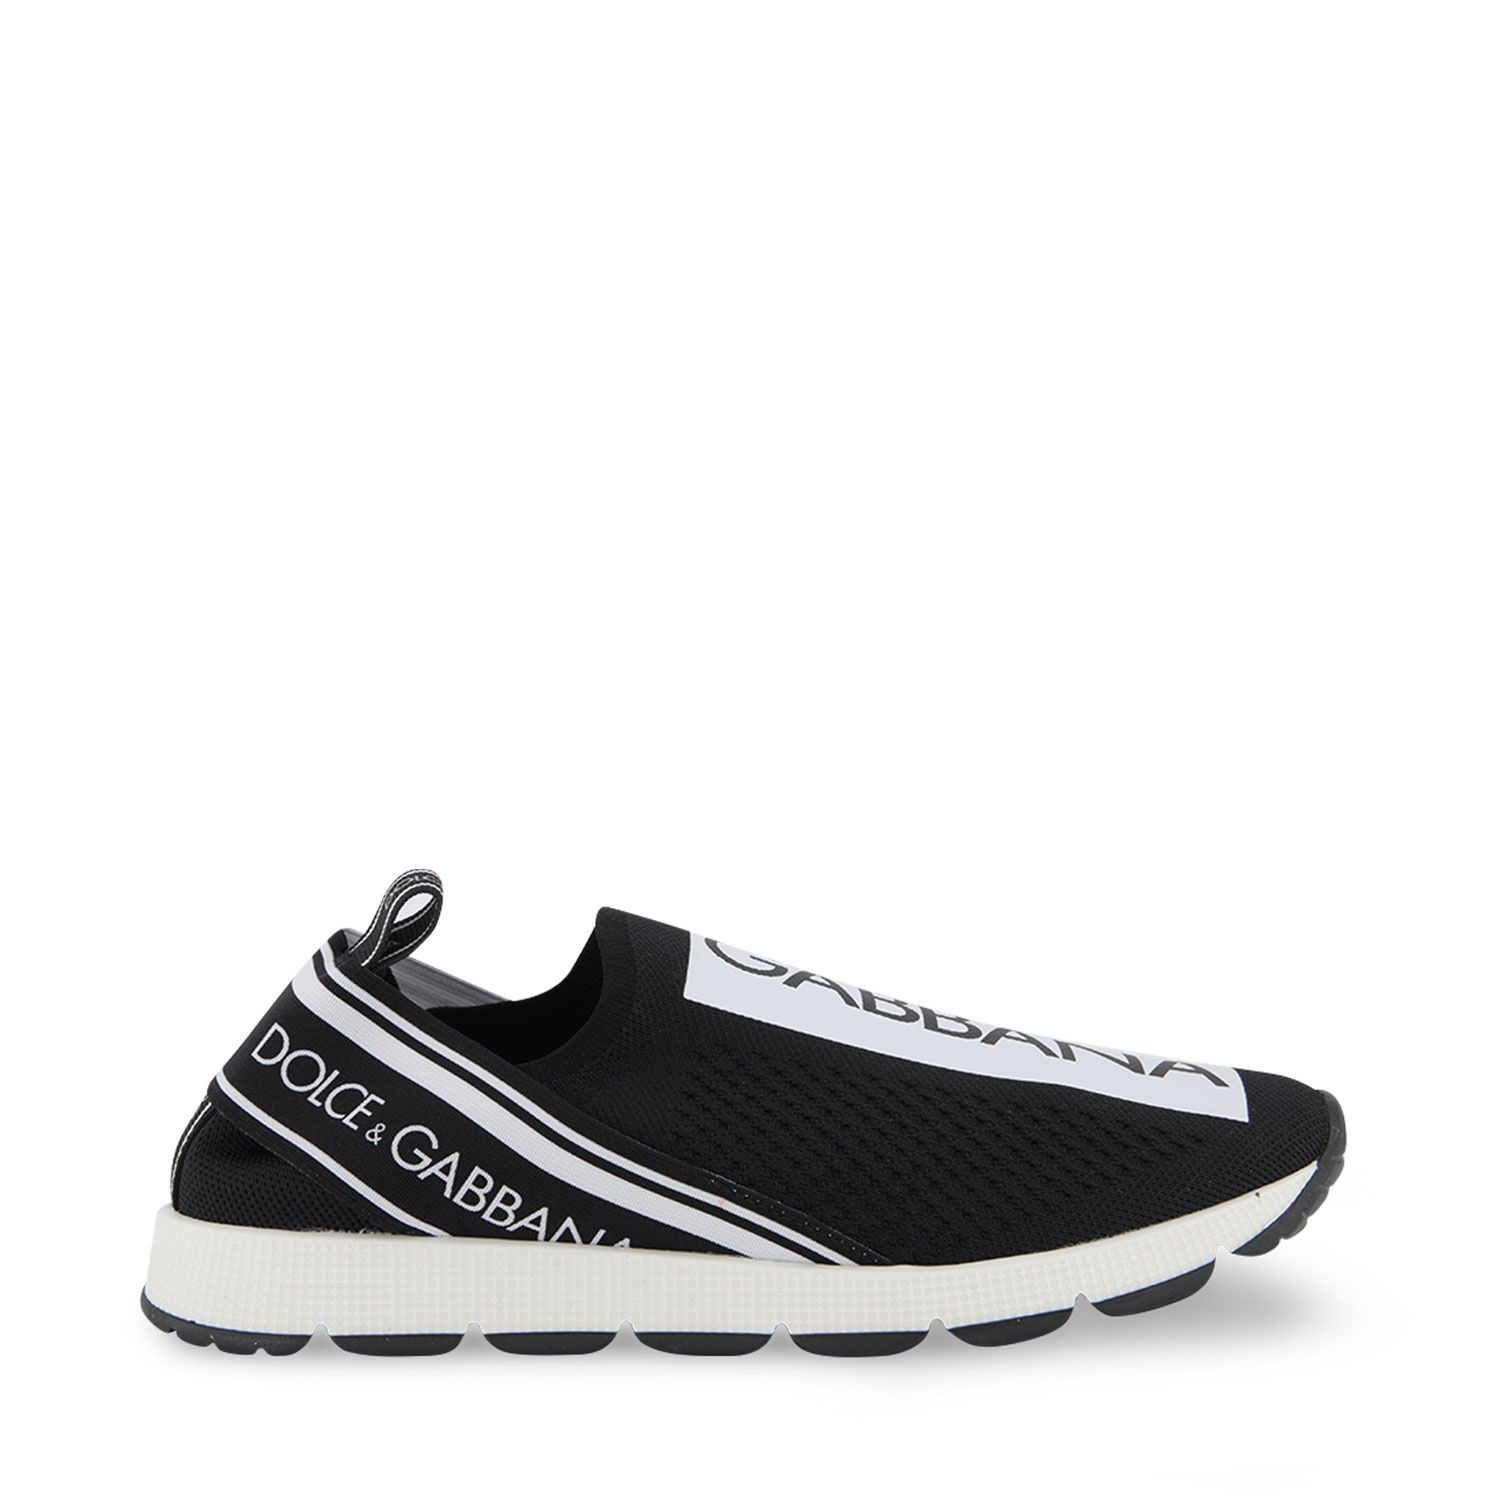 Picture of Dolce & Gabbana D10723 AH677 kids sneakers black